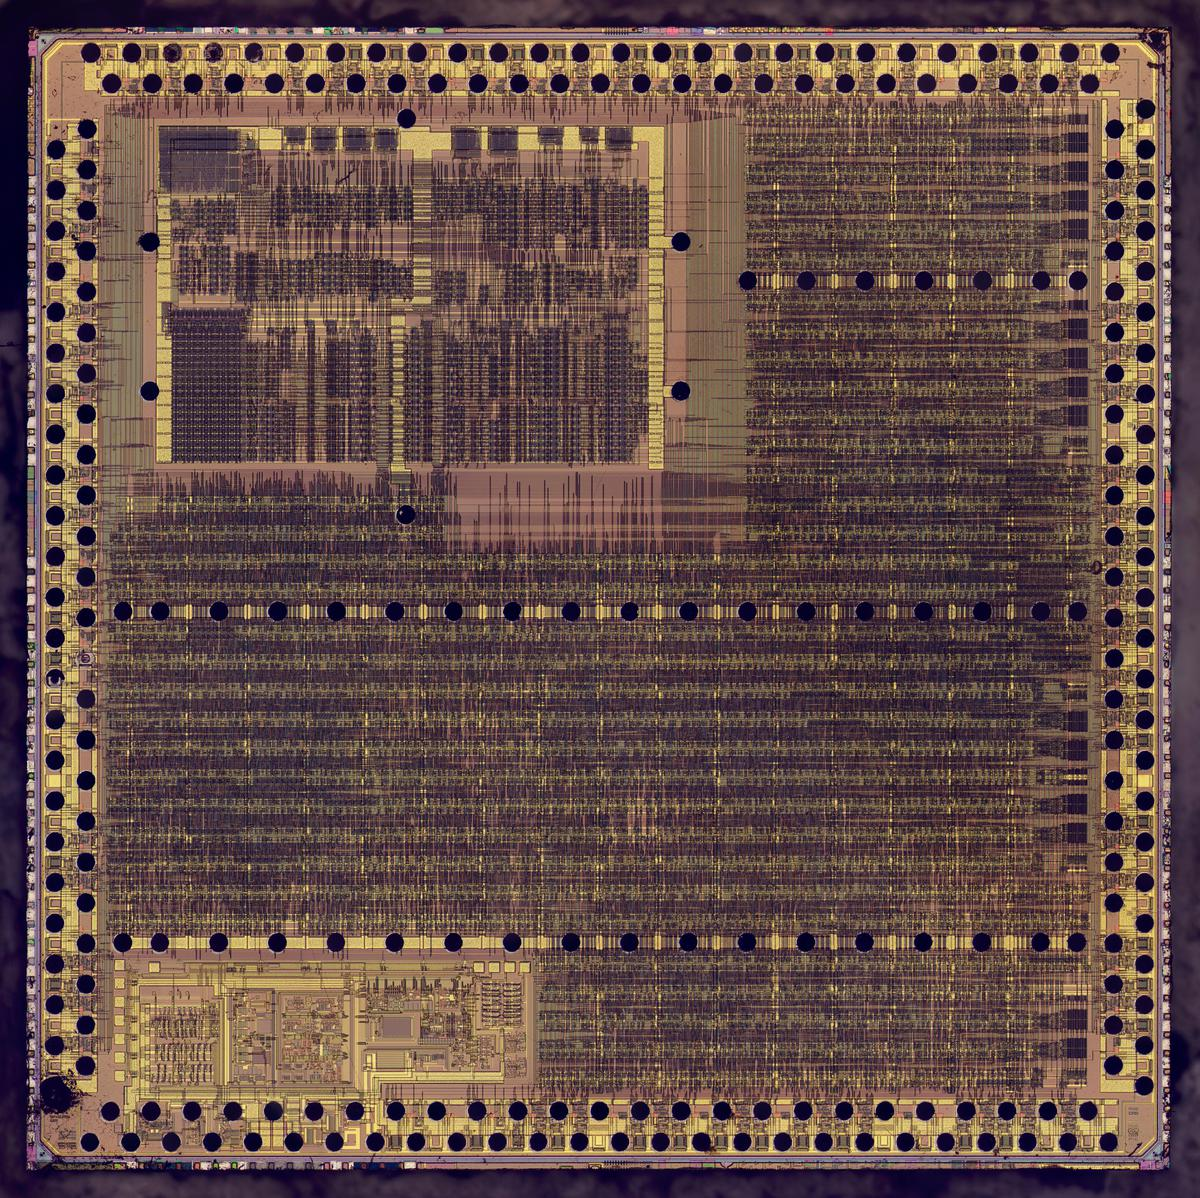 Die photo of the chip. (Click for a larger version.)